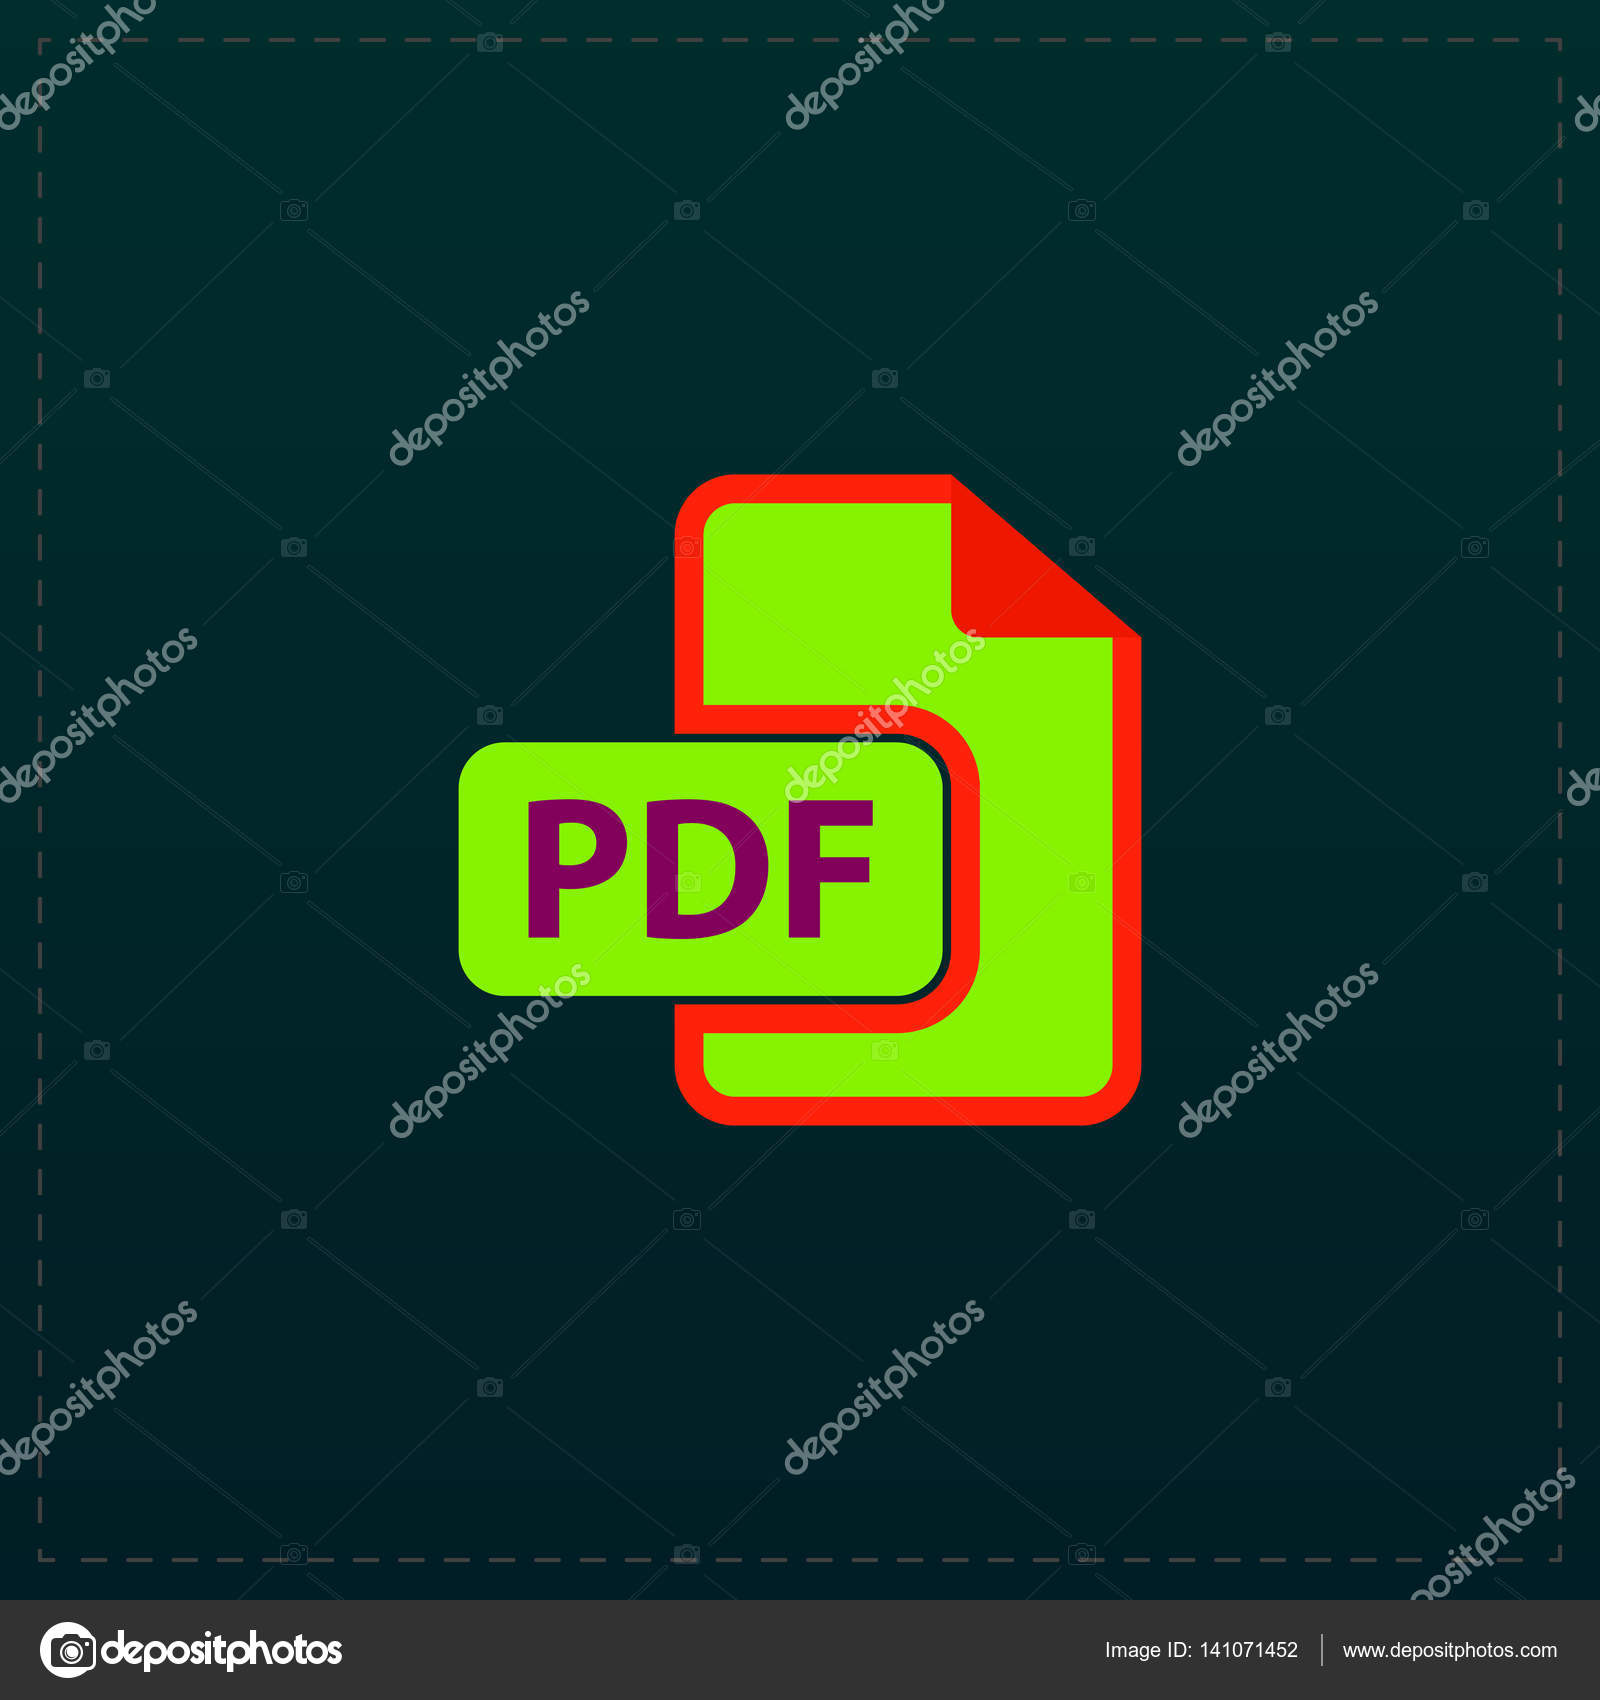 pdf flat icon — Stock Vector © burntime555 #141071452